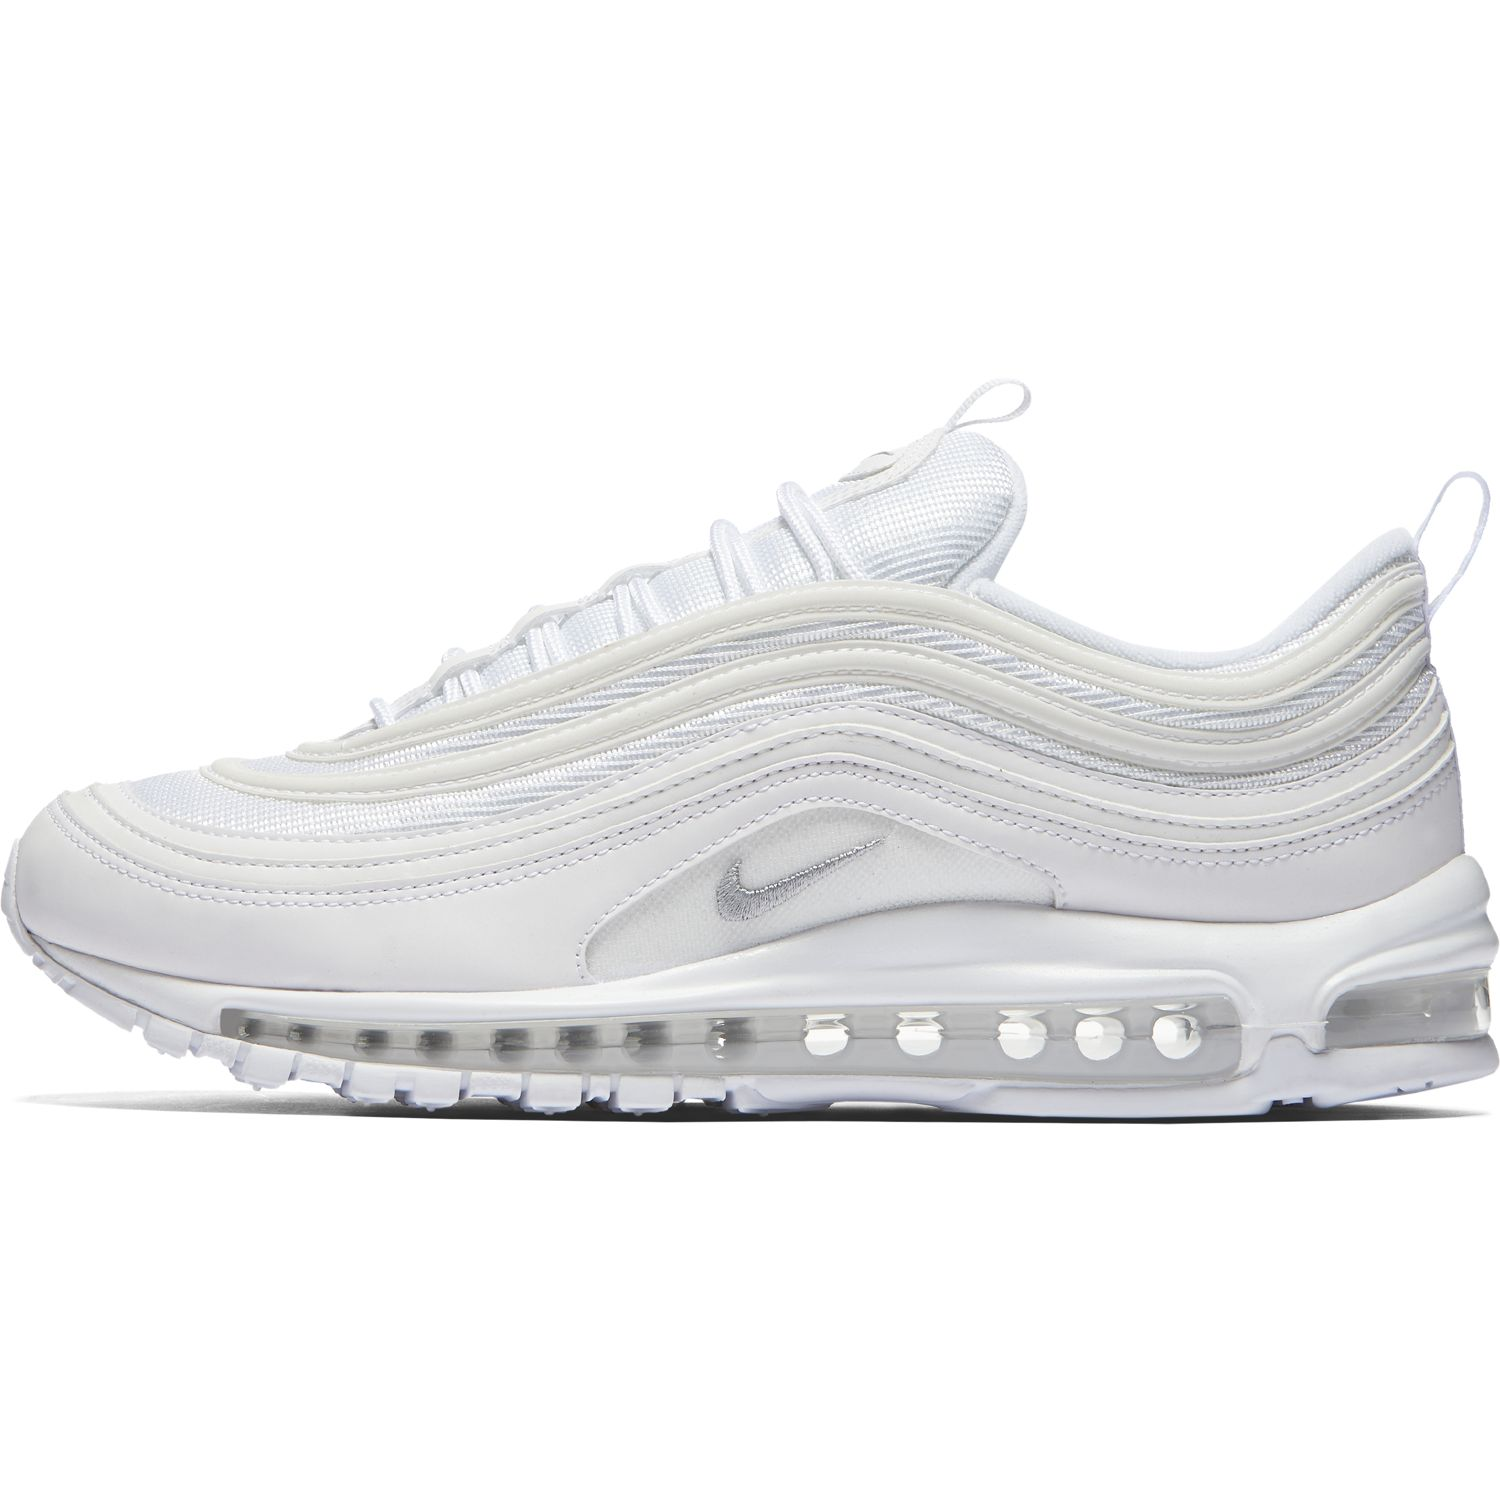 online store 23150 d01a1 ... BUTY MĘSKIE LIFESTYLE NIKE AIR MAX 97 BIAŁE 921826-101 ...